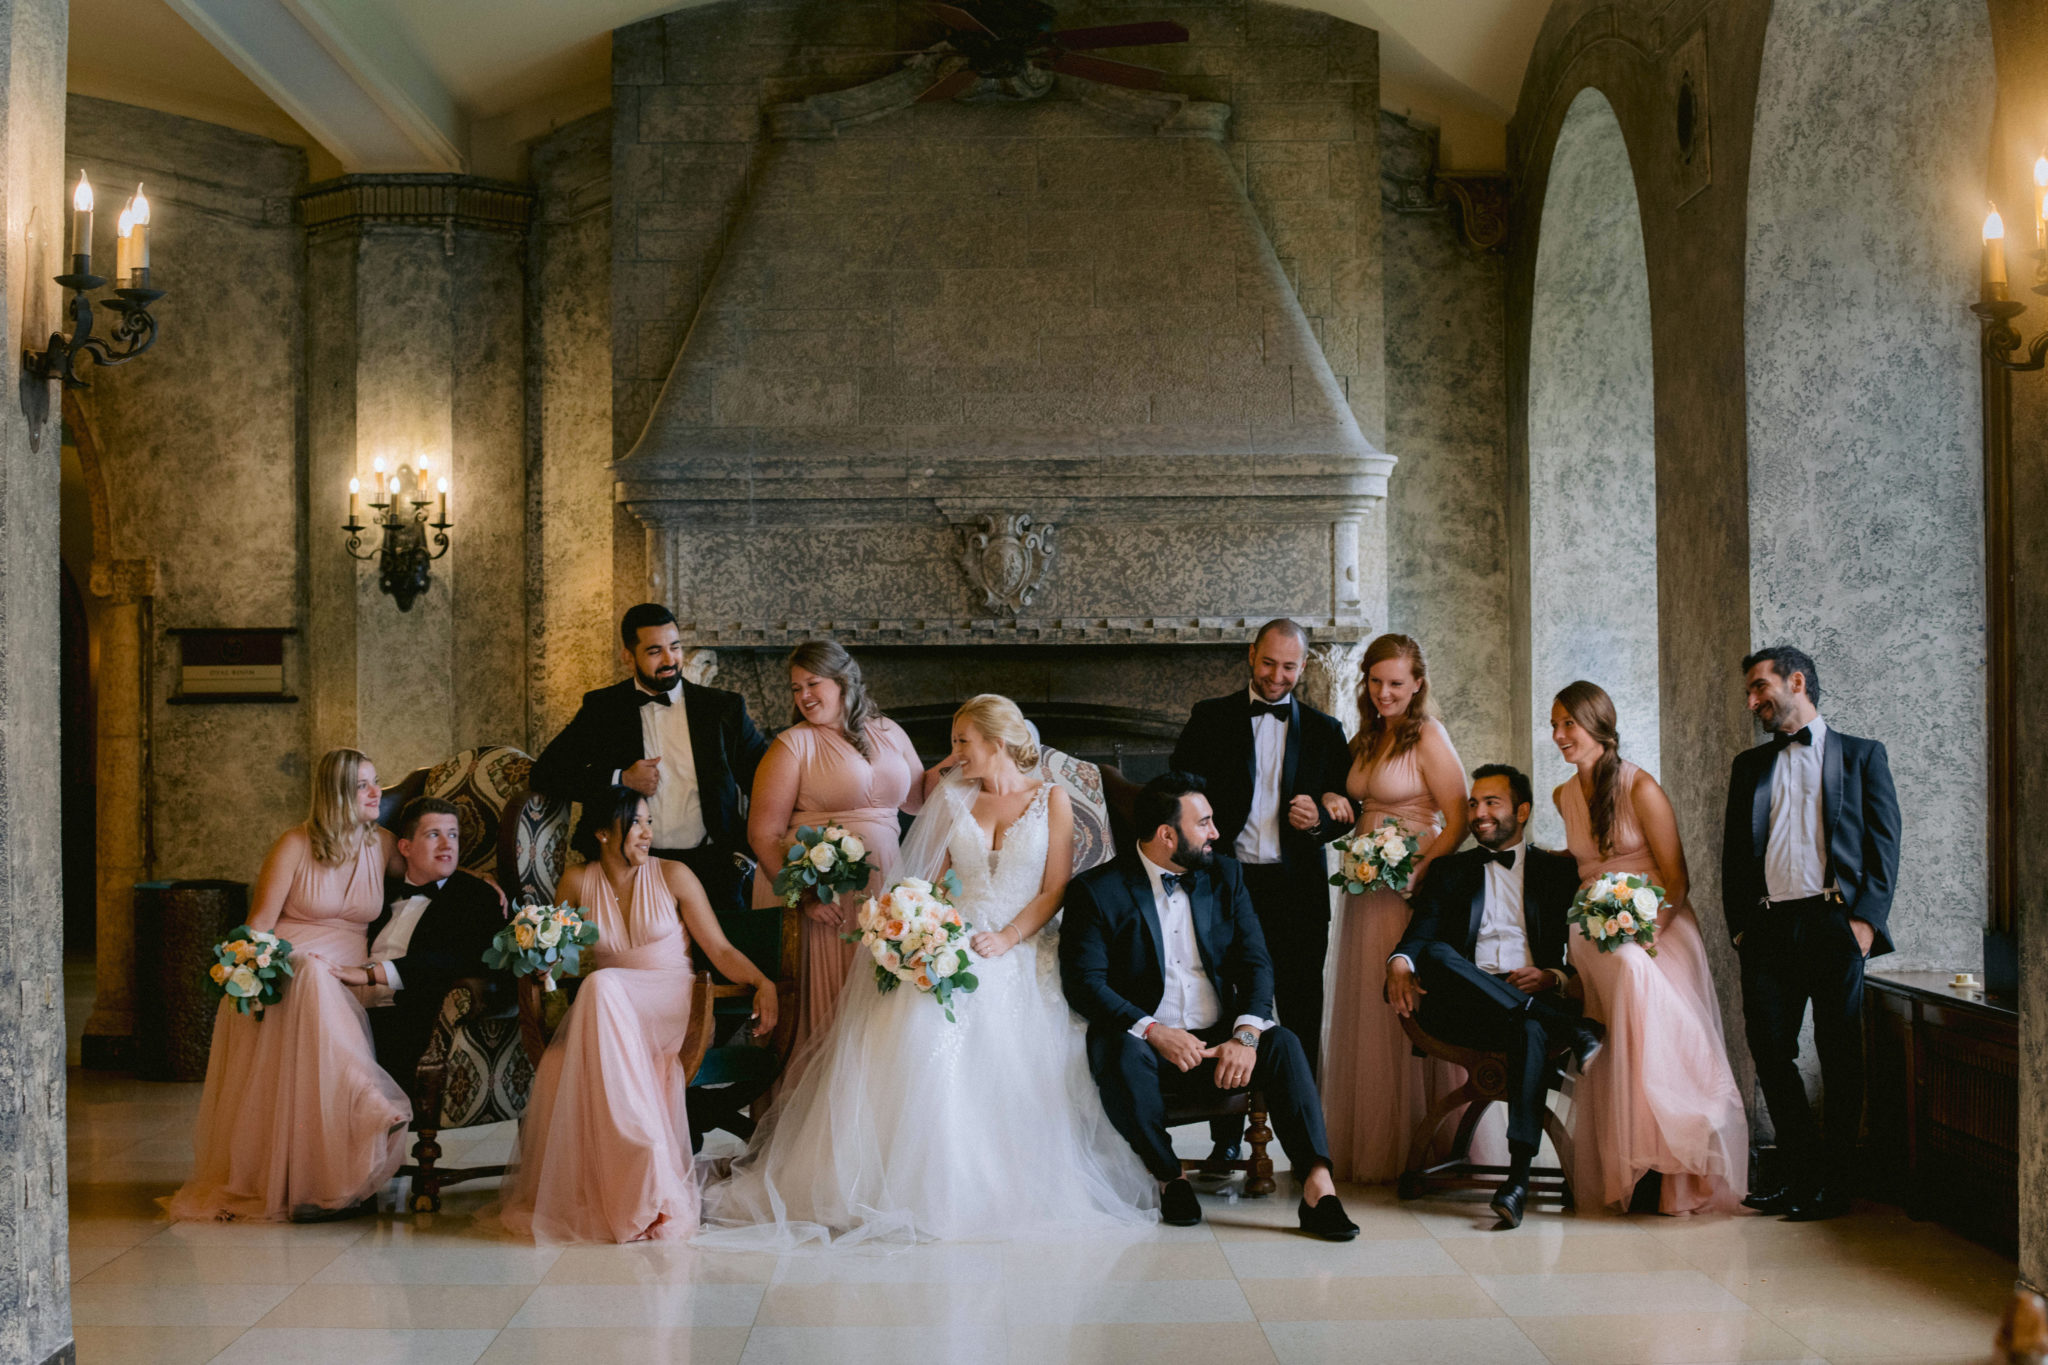 What you need to know about the coronavirus while planning a wedding.